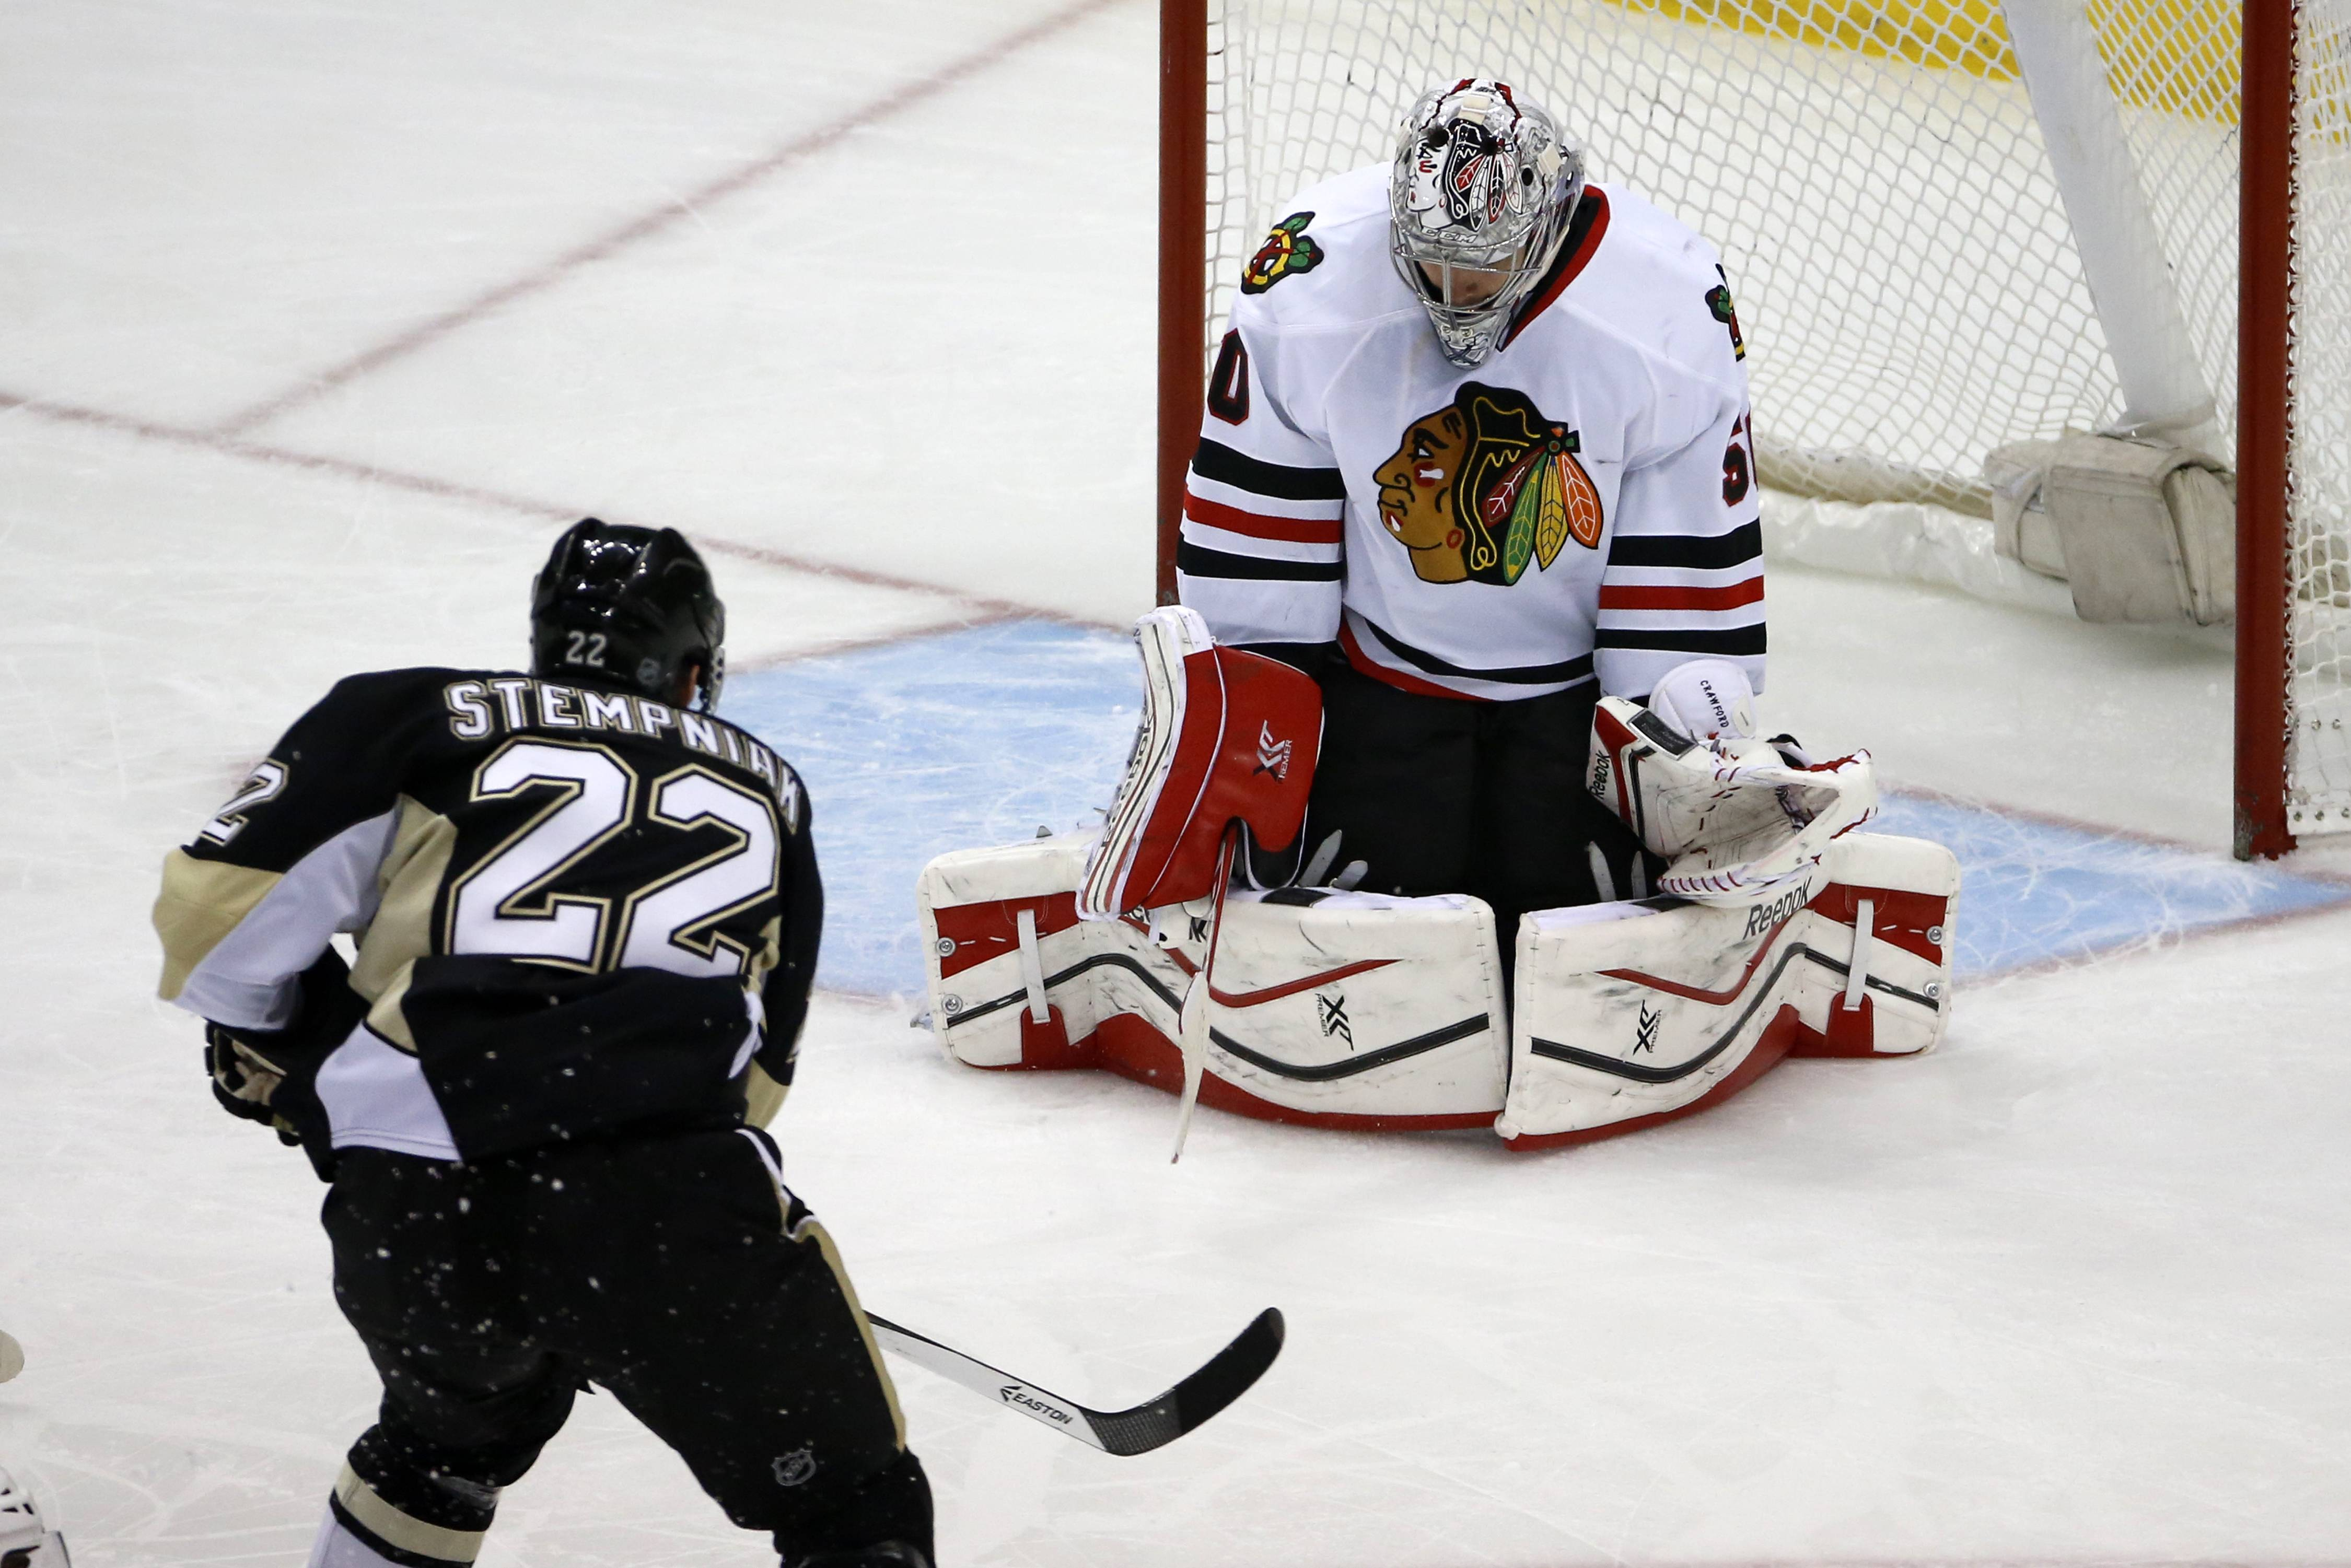 The Penguins' Lee Stempniak puts the puck behind Hawks goalie Corey Crawford in the first period Sunday night.